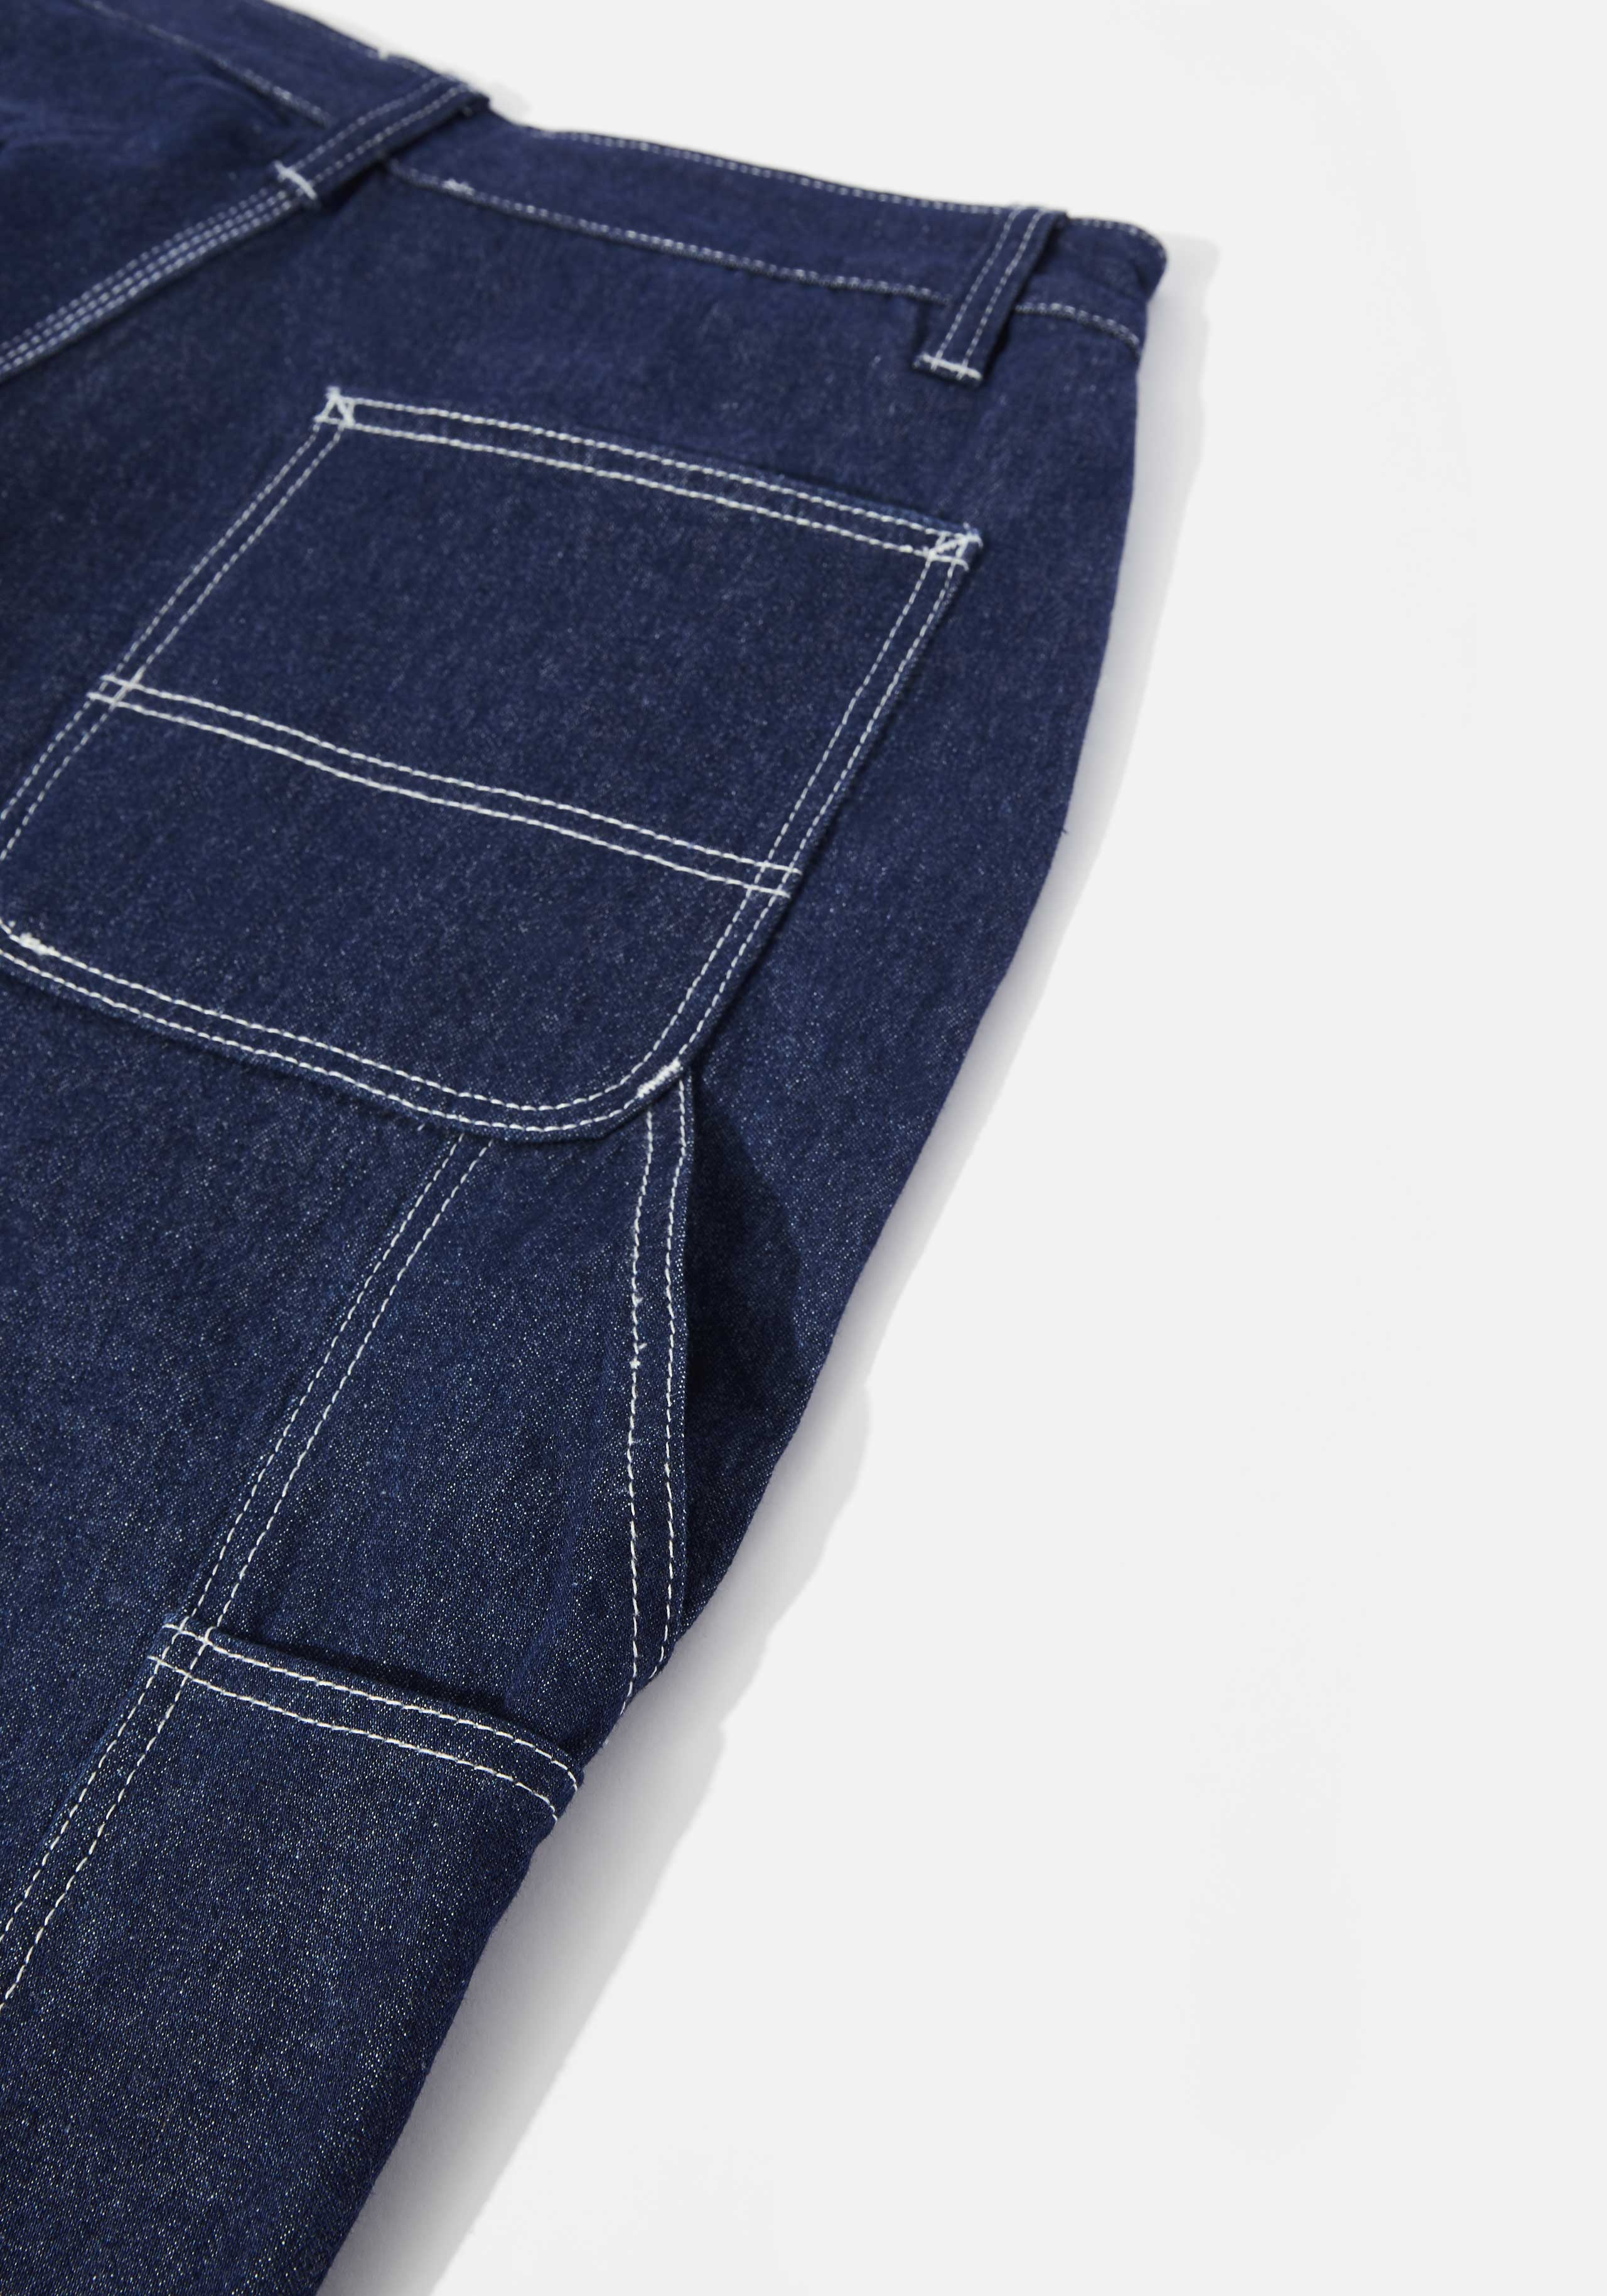 mki denim carpenter jeans 5